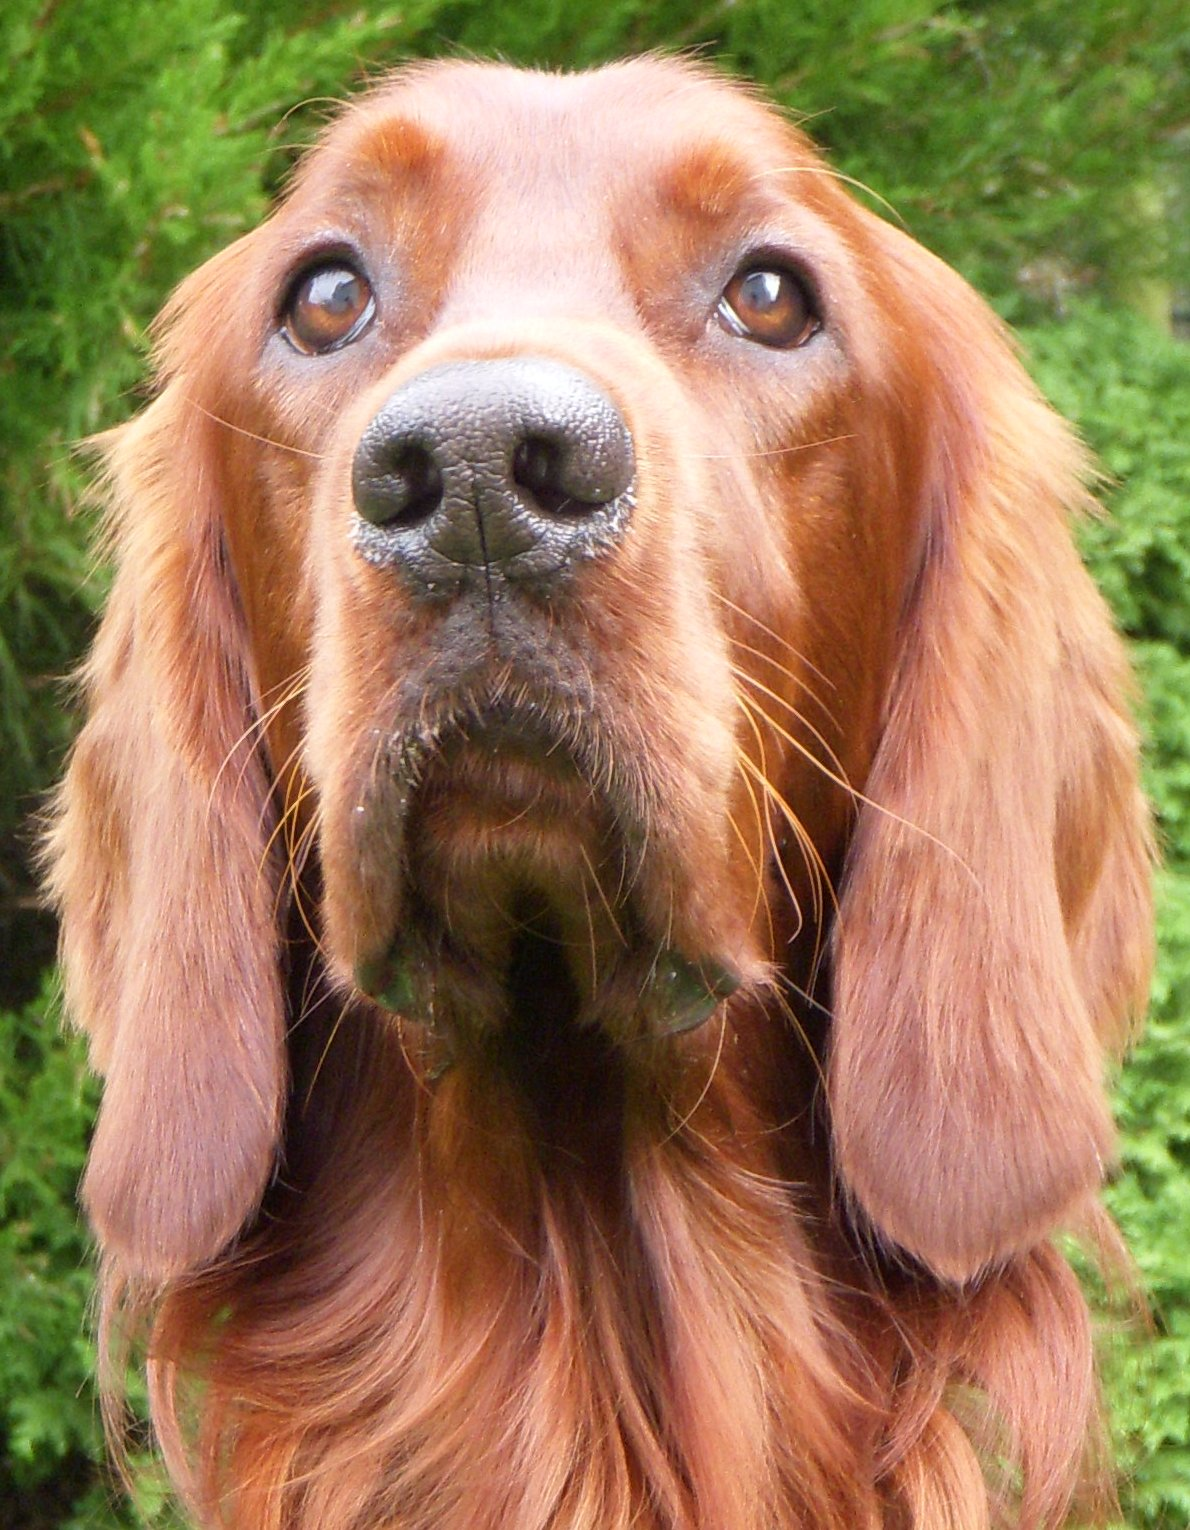 http://upload.wikimedia.org/wikipedia/commons/8/88/Irish_Setter_001.jpg